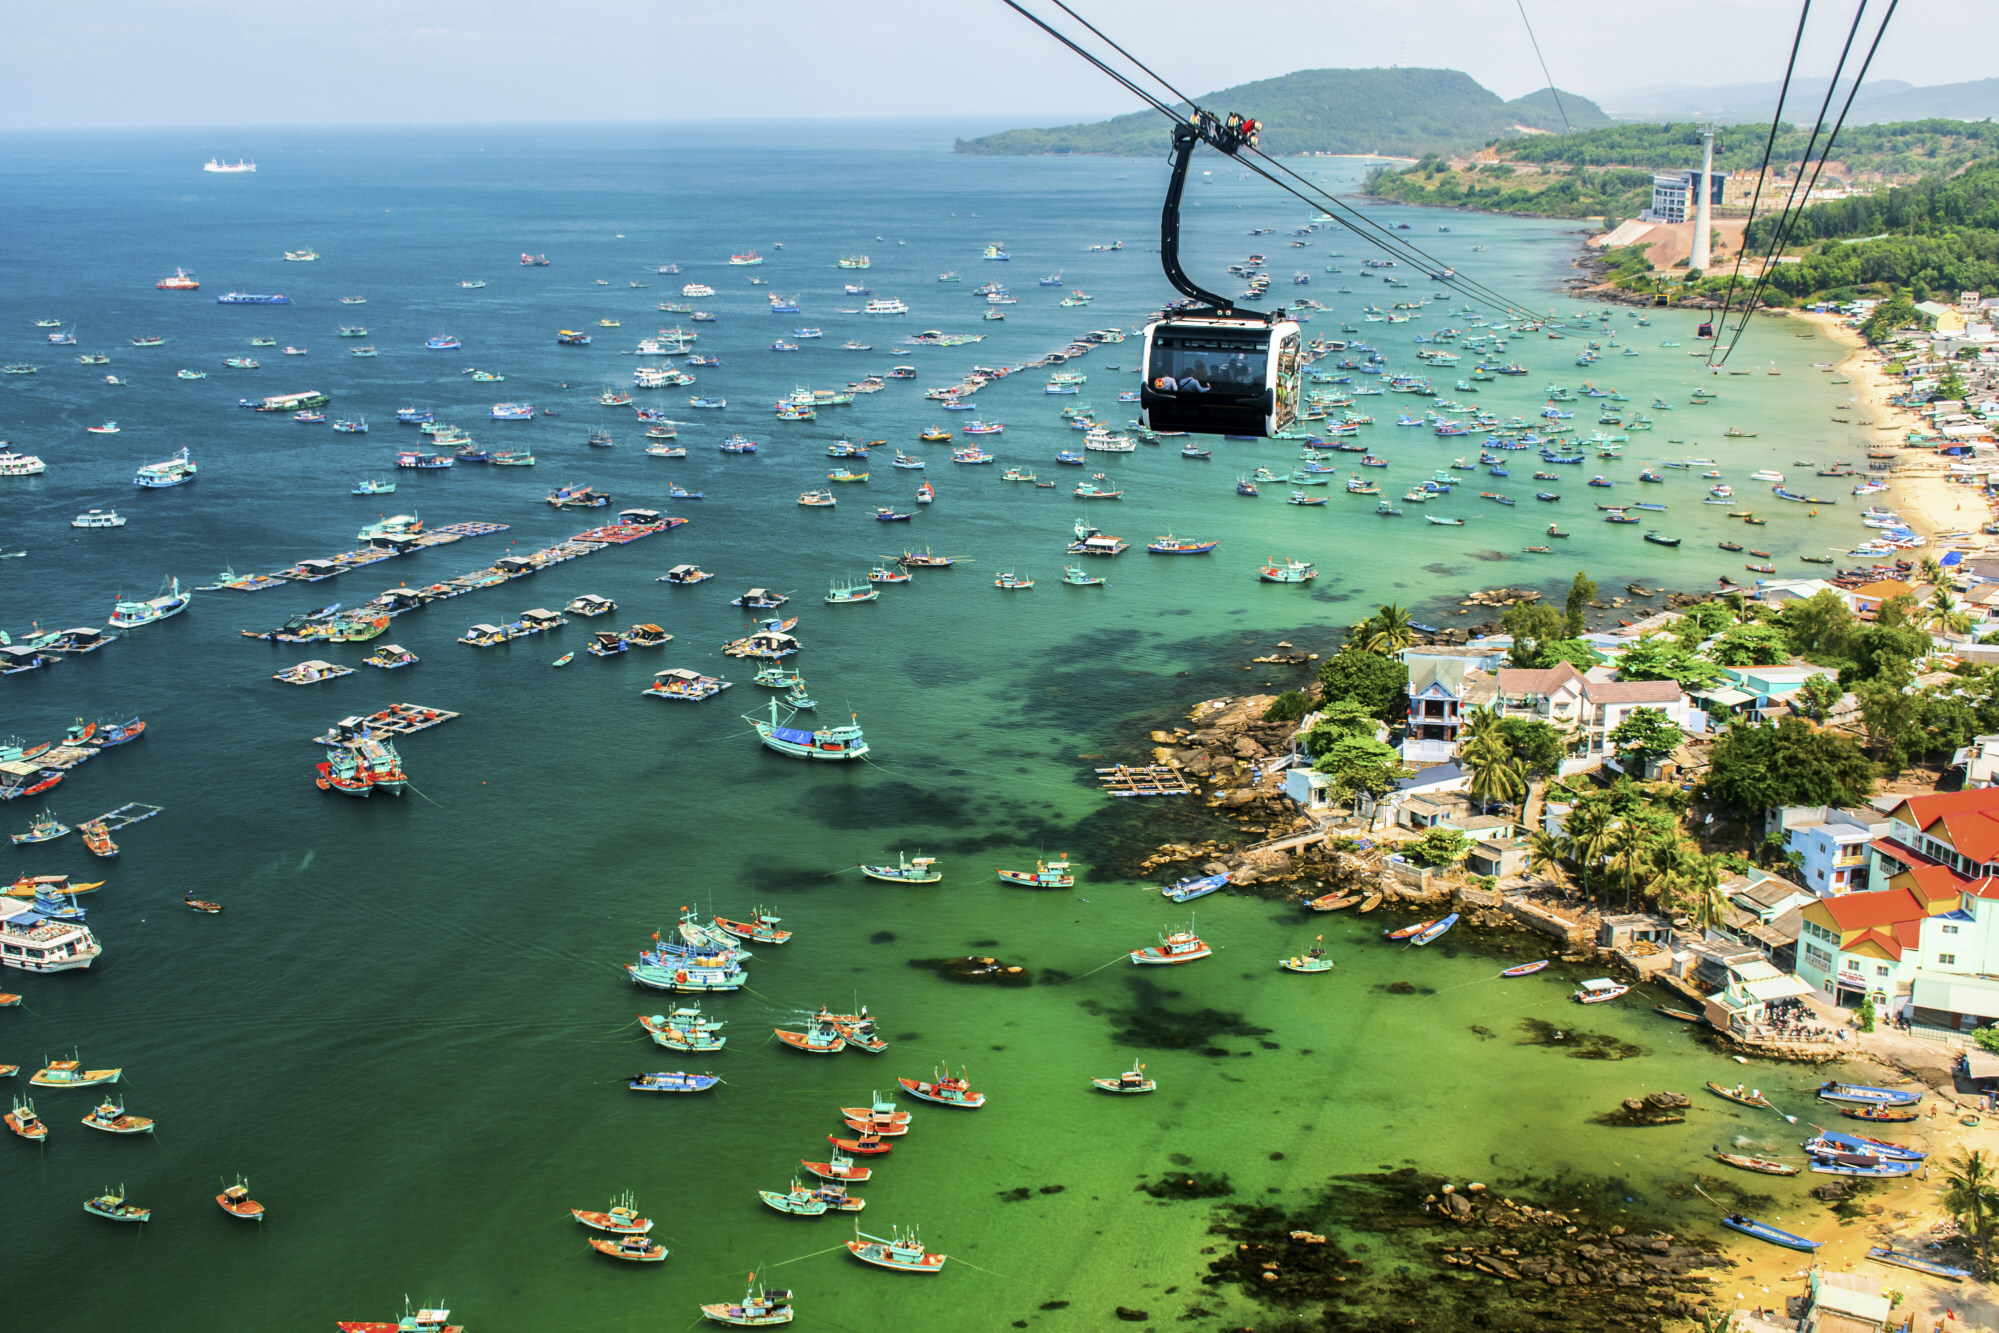 A cable car on Phu Quoc Island in South Vietnam. Photo: Shutterstock